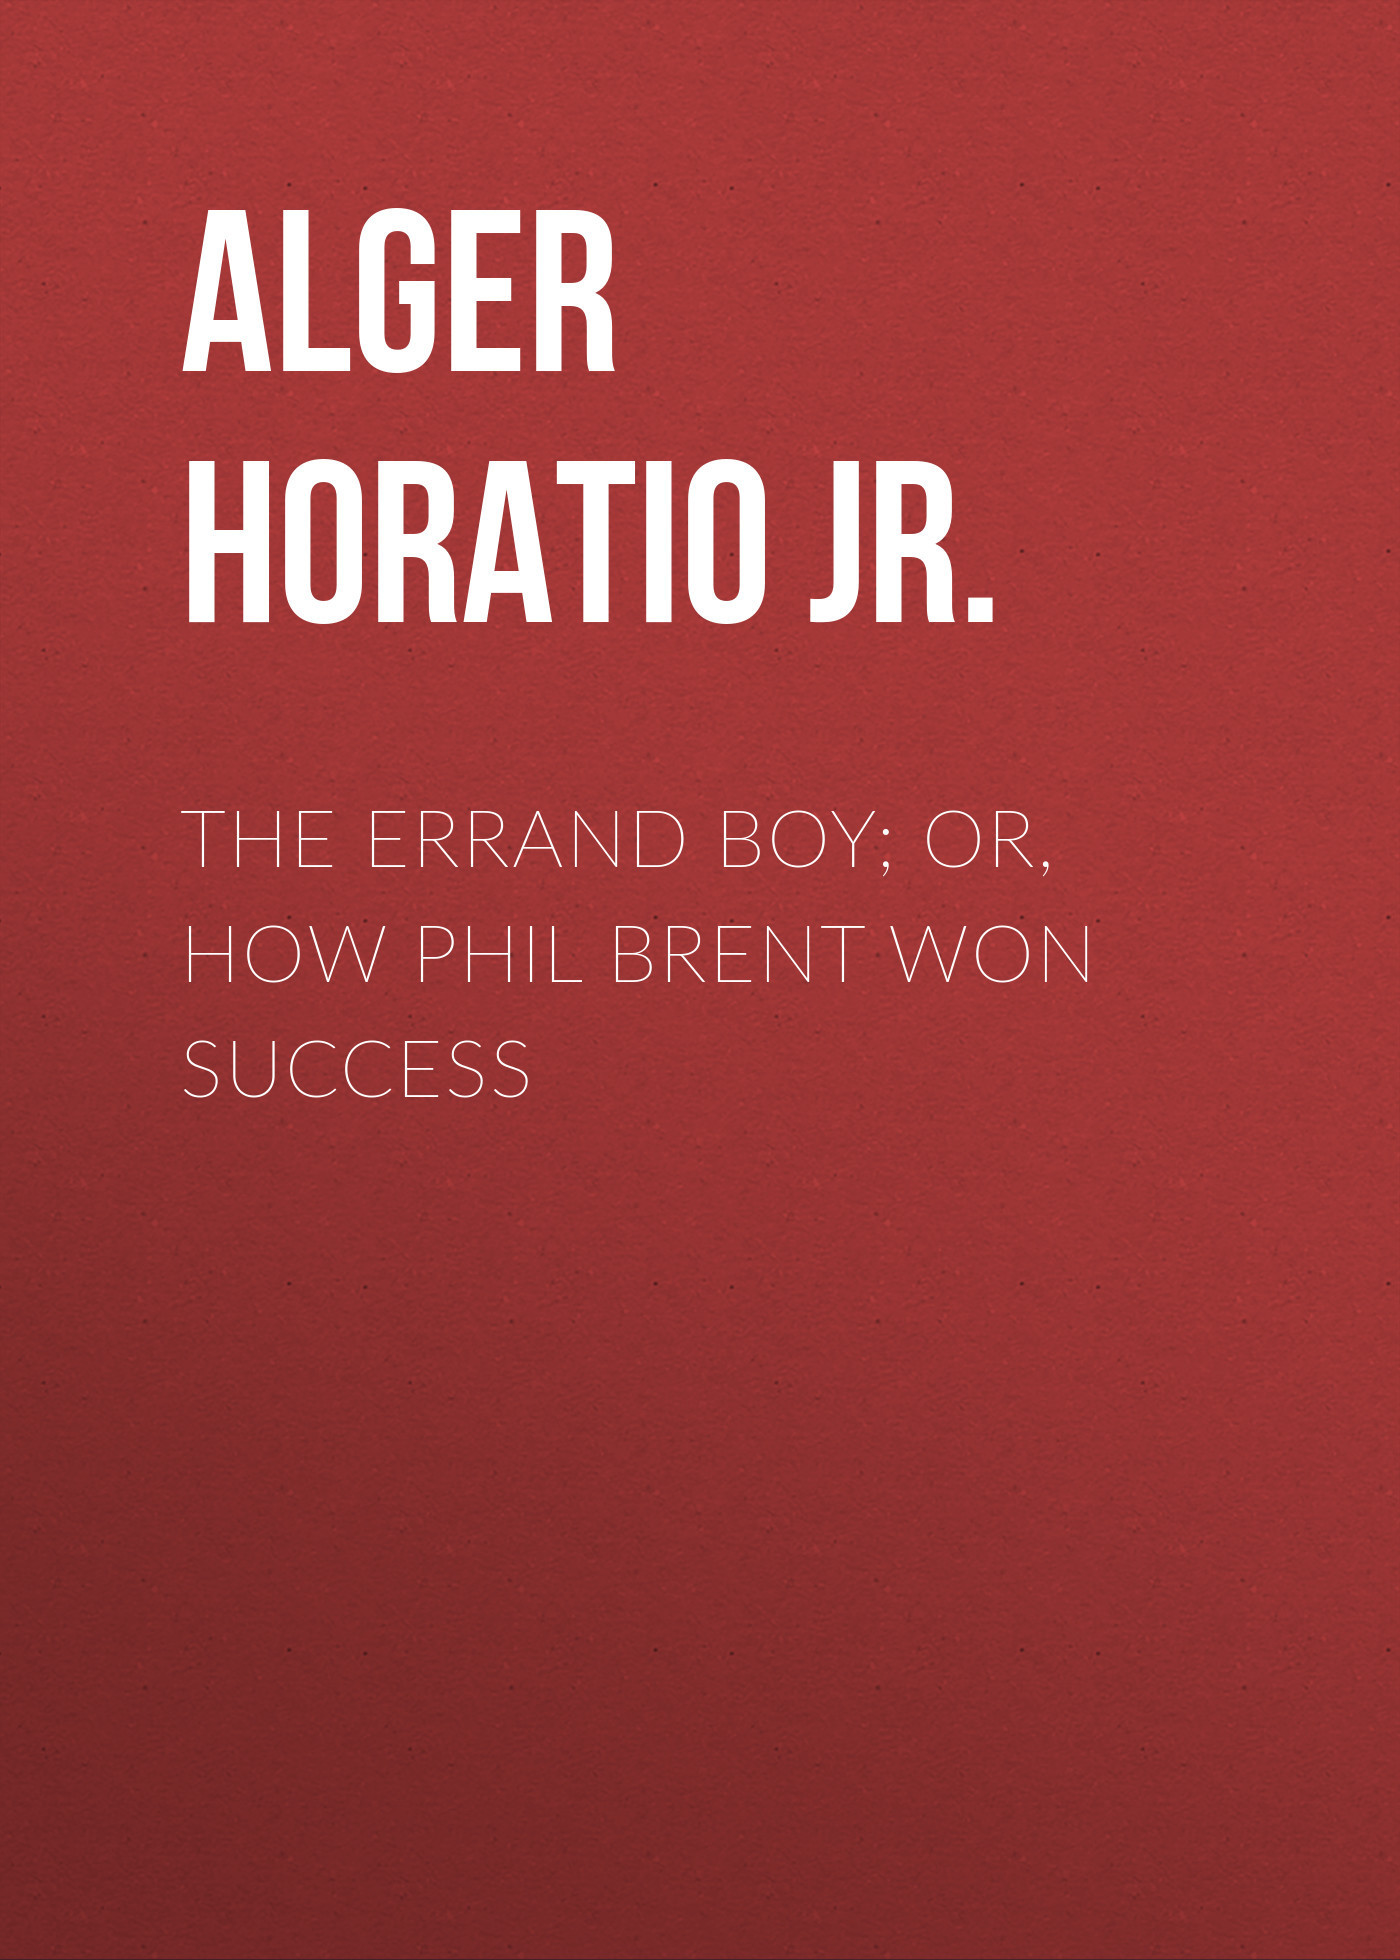 Alger Horatio Jr. The Errand Boy; Or, How Phil Brent Won Success the trojan horse how the greeks won the war